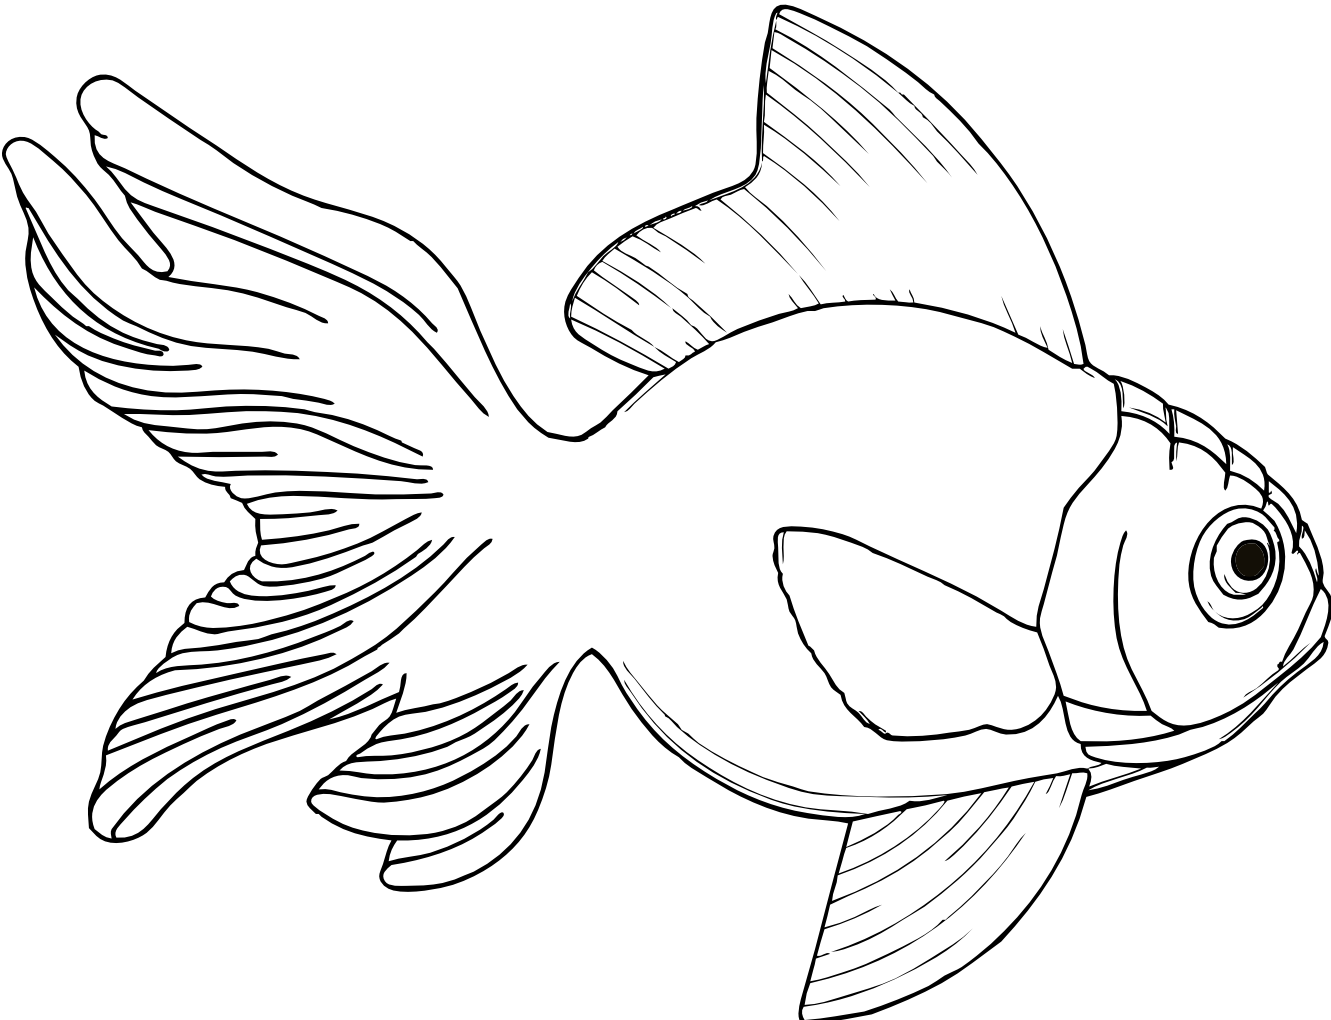 Line Art Graphics : Fish line drawings cliparts